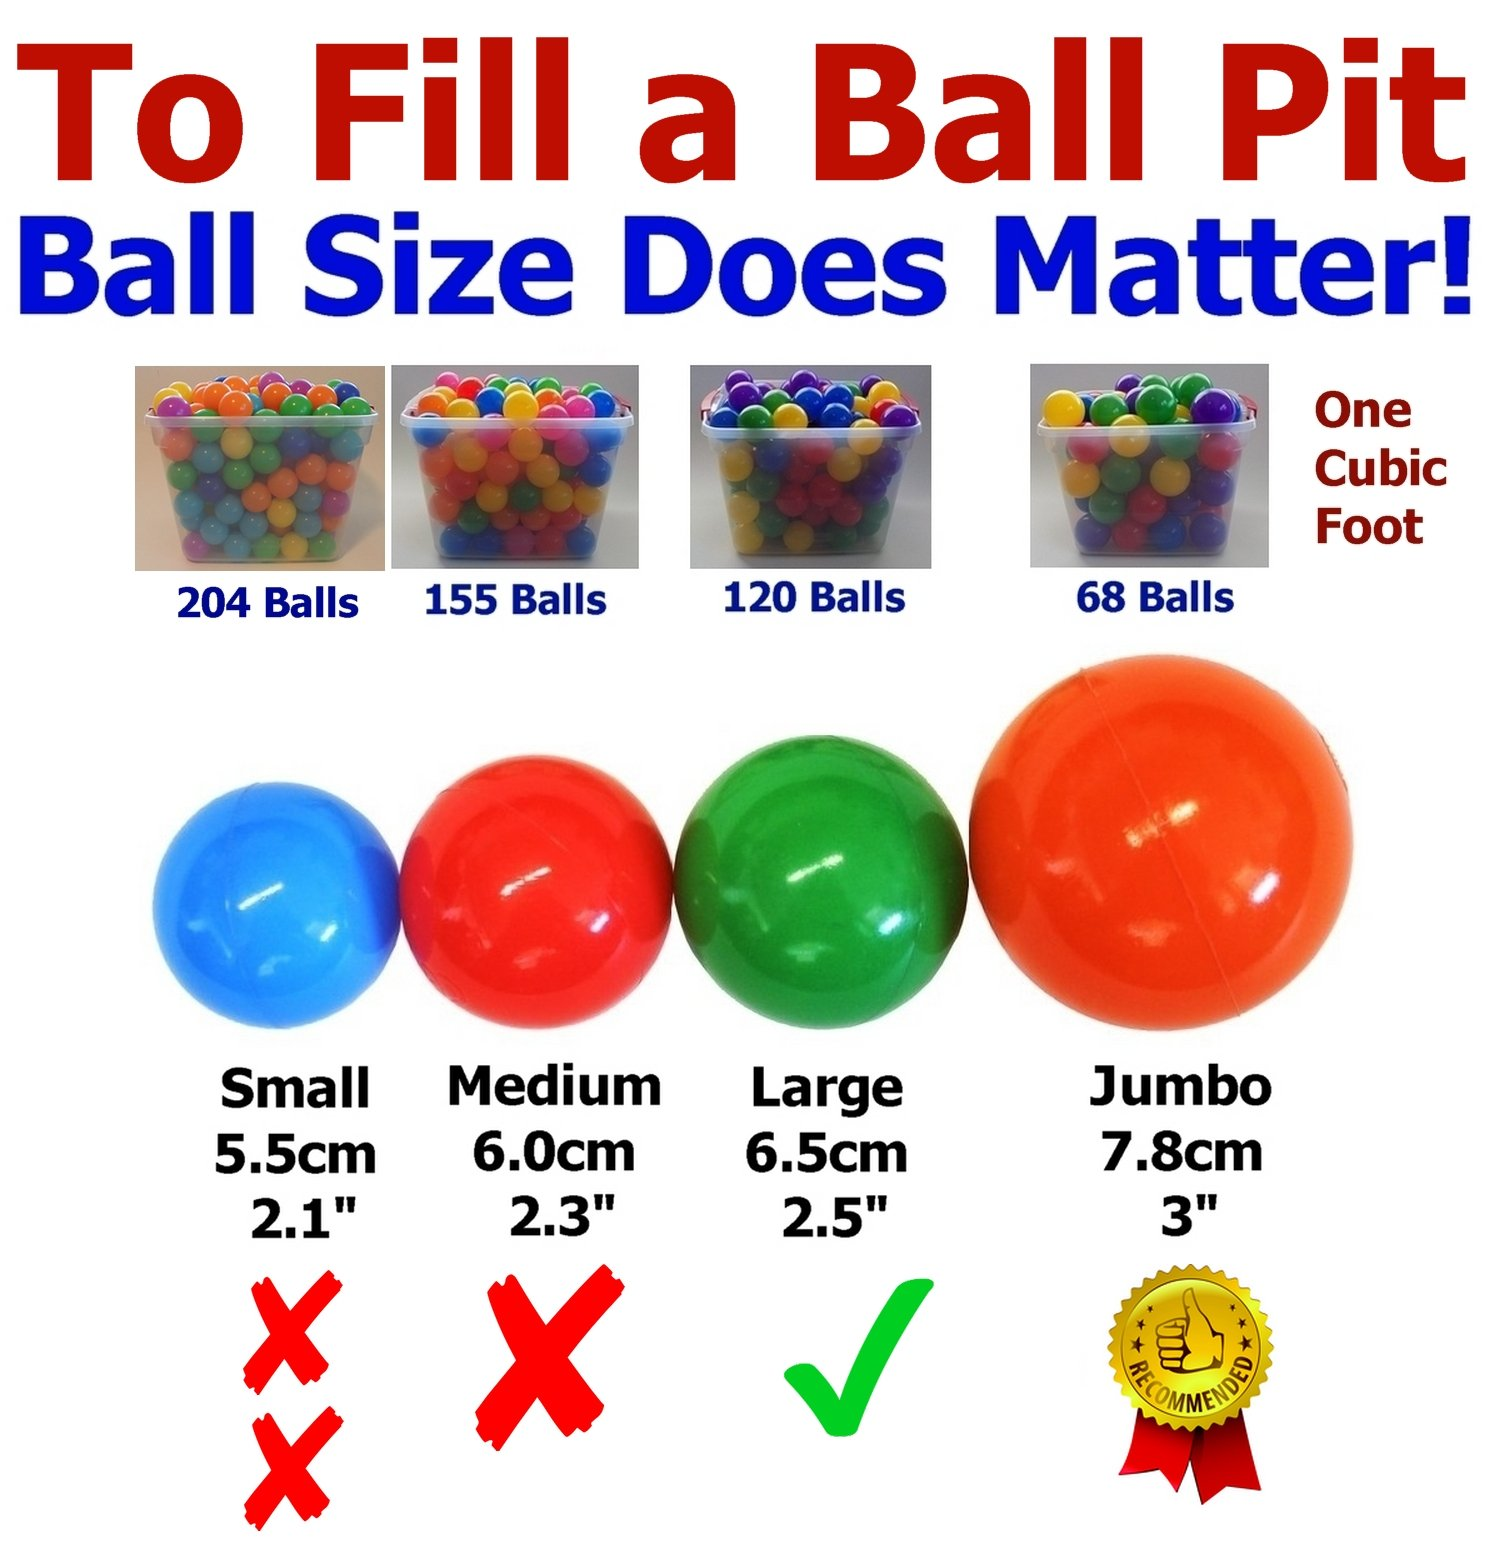 My Balls Pack of 600 Jumbo 3'' Red/Yellow/Green Colors of Season Heavy Duty Commercial Grade Crush-Proof Ball Pit Balls - Phthalate Free BPA Free Non-Recycled Plastic by My Balls (Image #2)